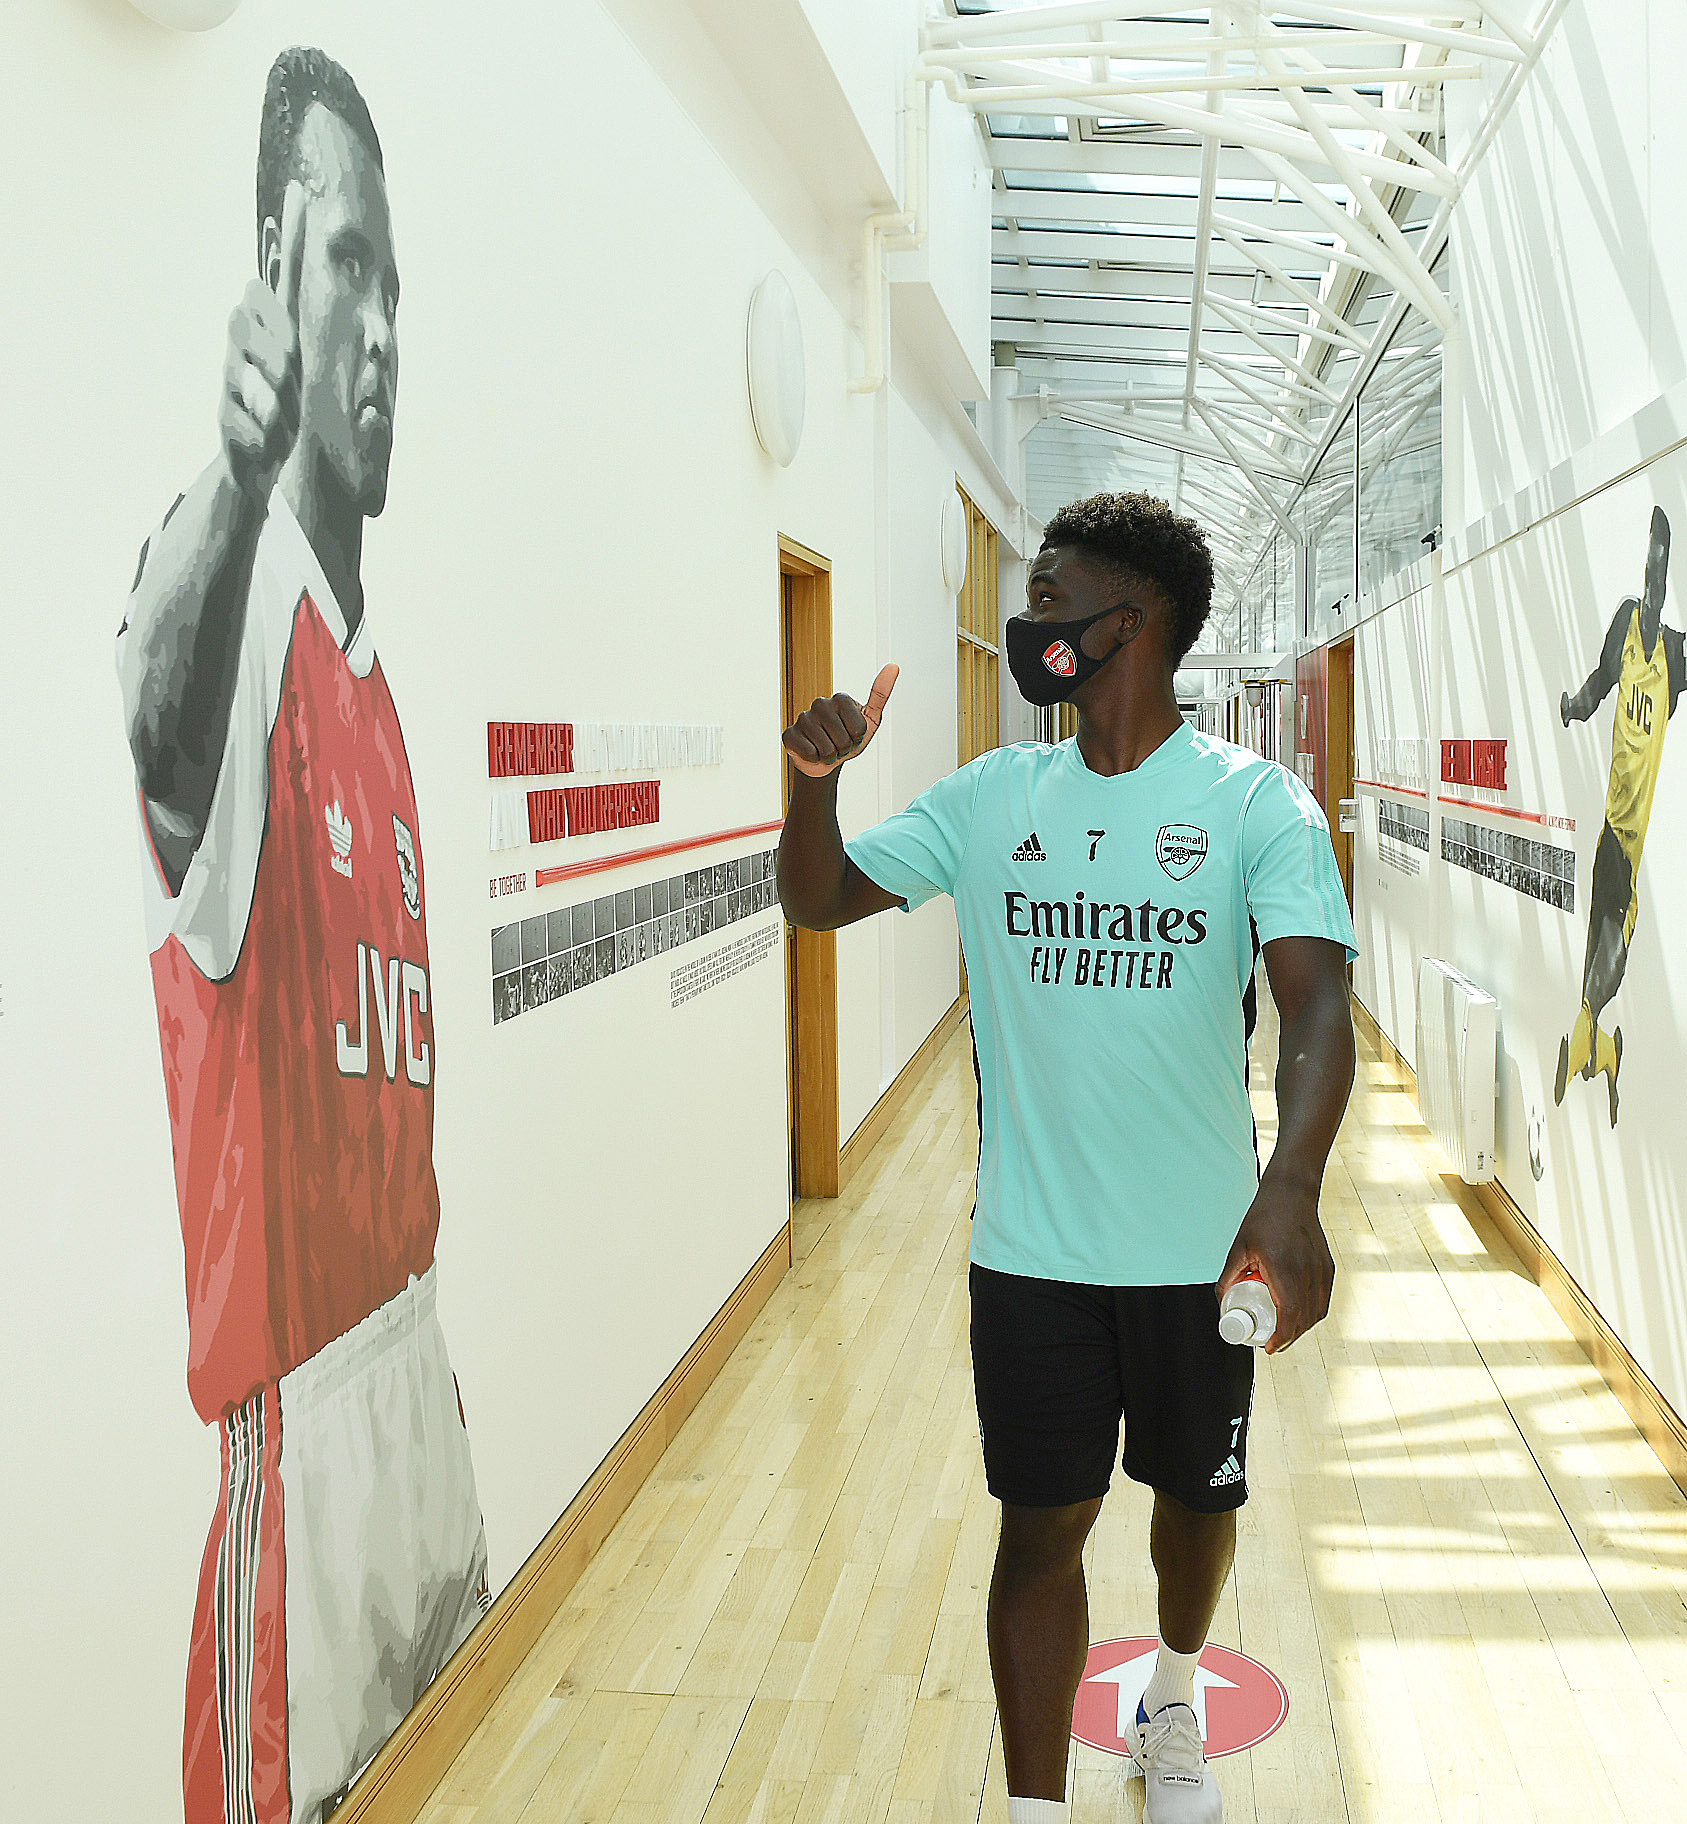 <p>ST ALBANS, ENGLAND - AUGUST 04: Arsenal's Bukayo Saka walks to the gym at the Arsenal training centre before a training session at London Colney on August 04, 2021 in St Albans, England. (Photo by Stuart MacFarlane/Arsenal FC via Getty Images)</p>